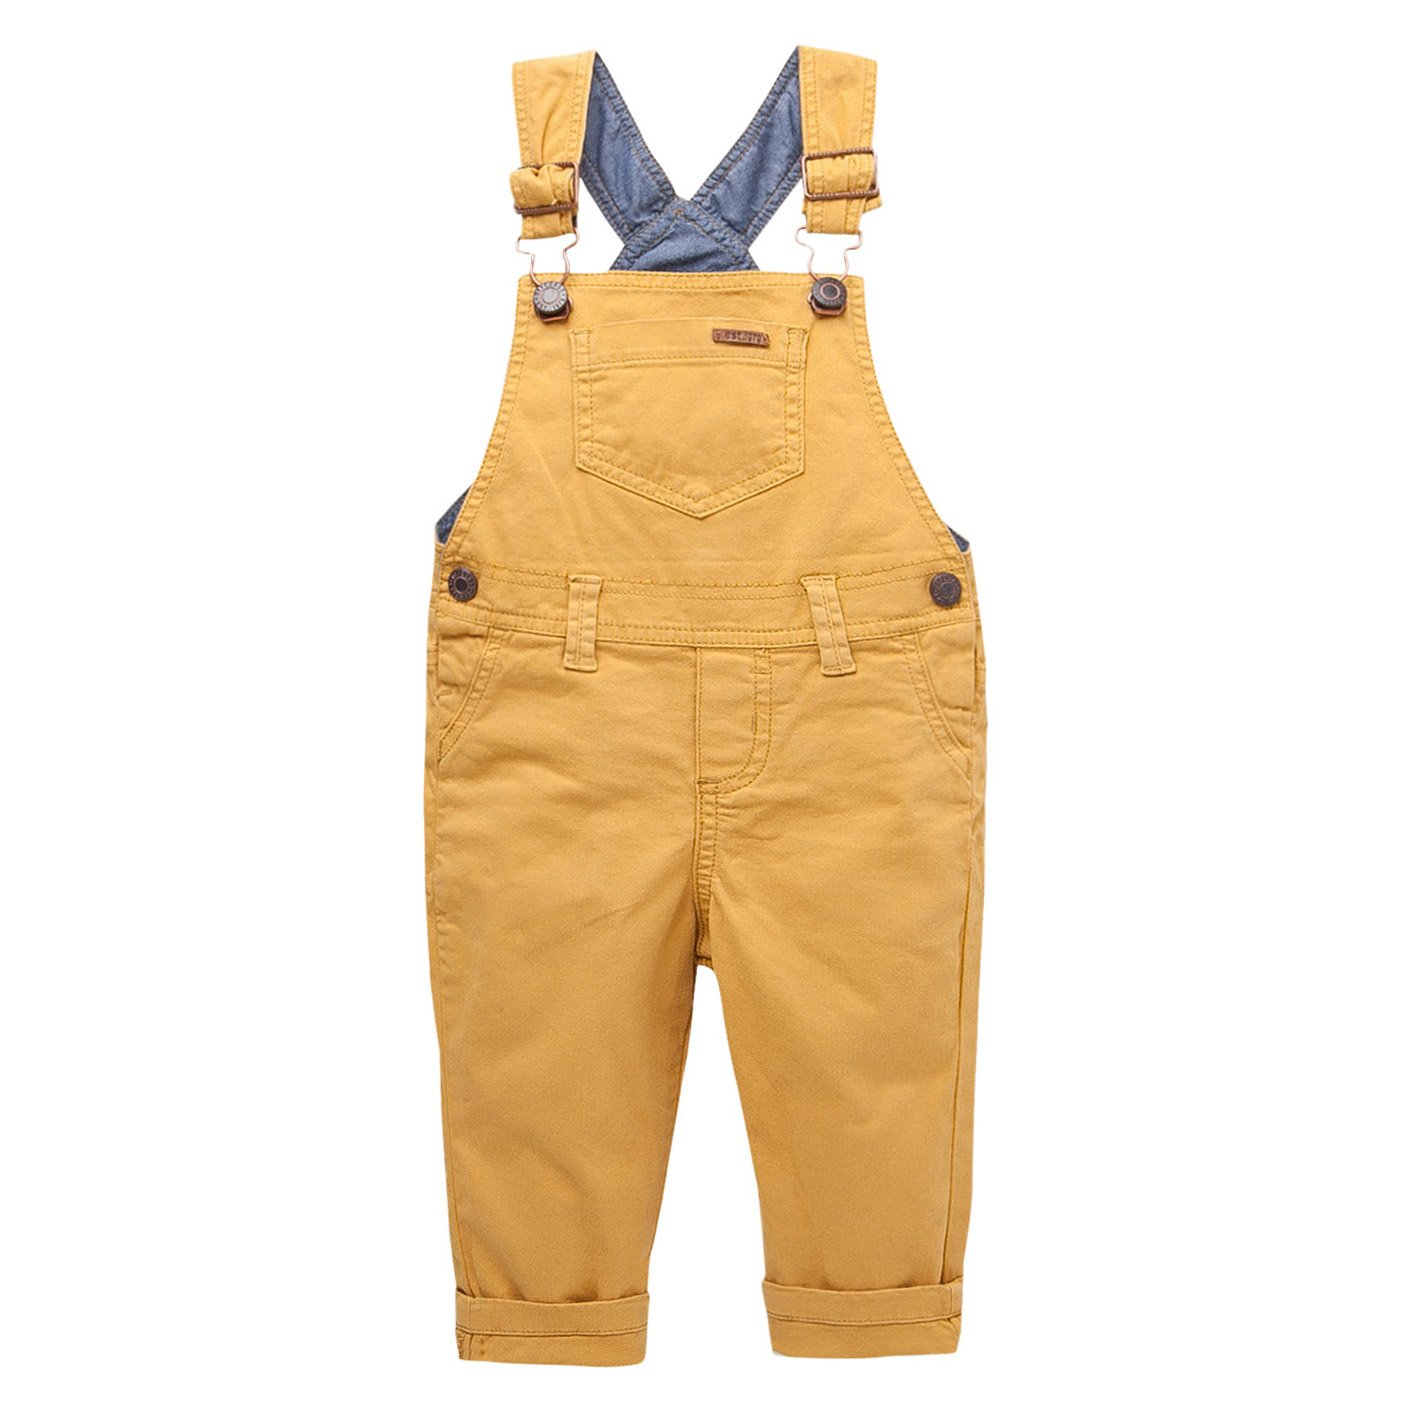 OFFCORSS Toddler Boy Kid Infant Bib Matching Brother Twin Jean Denim Cotton Cute Long Overalls Dungarees with Hooks Outfit Overol para Niños Yellow 3T